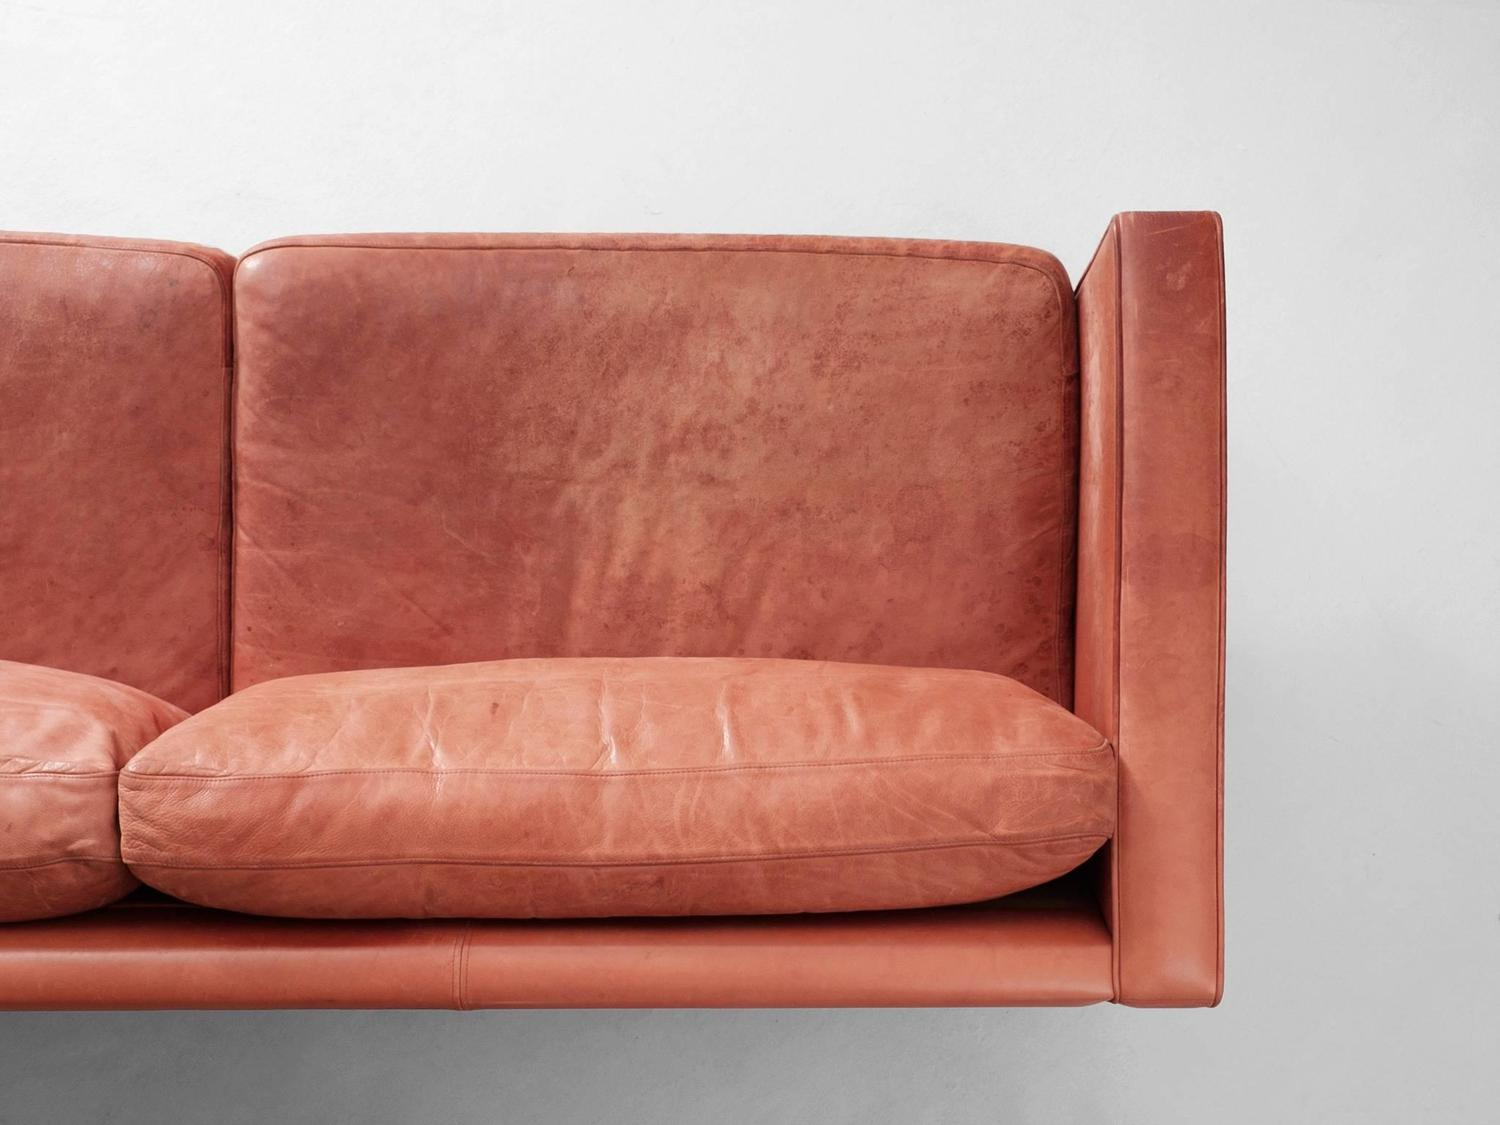 Illums Bolighus Patinated Red Leather Sofa For Sale At 1stdibs